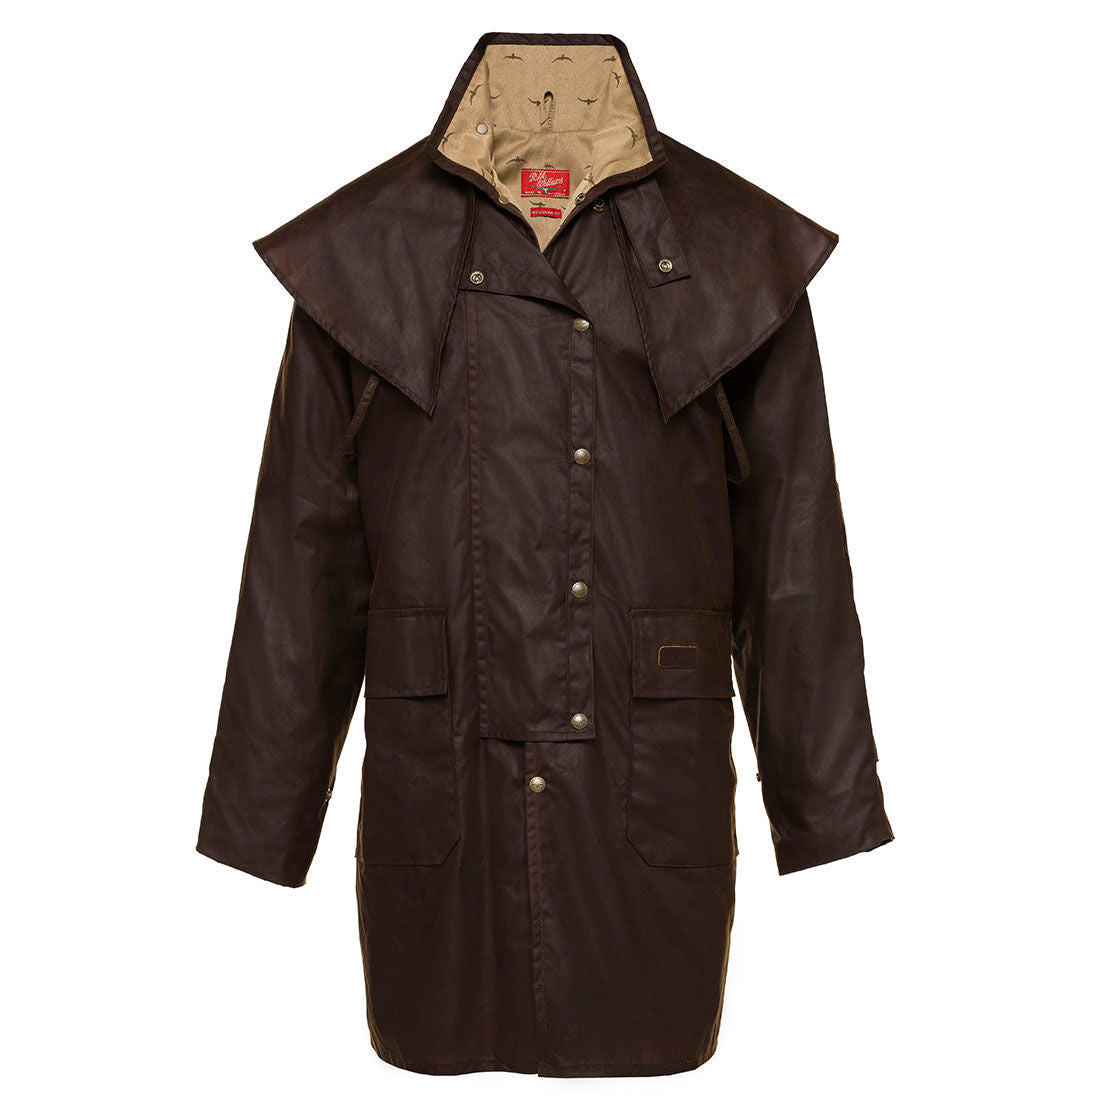 R.M.Williams 3/4 Length Oilskin Rouseabout Coat